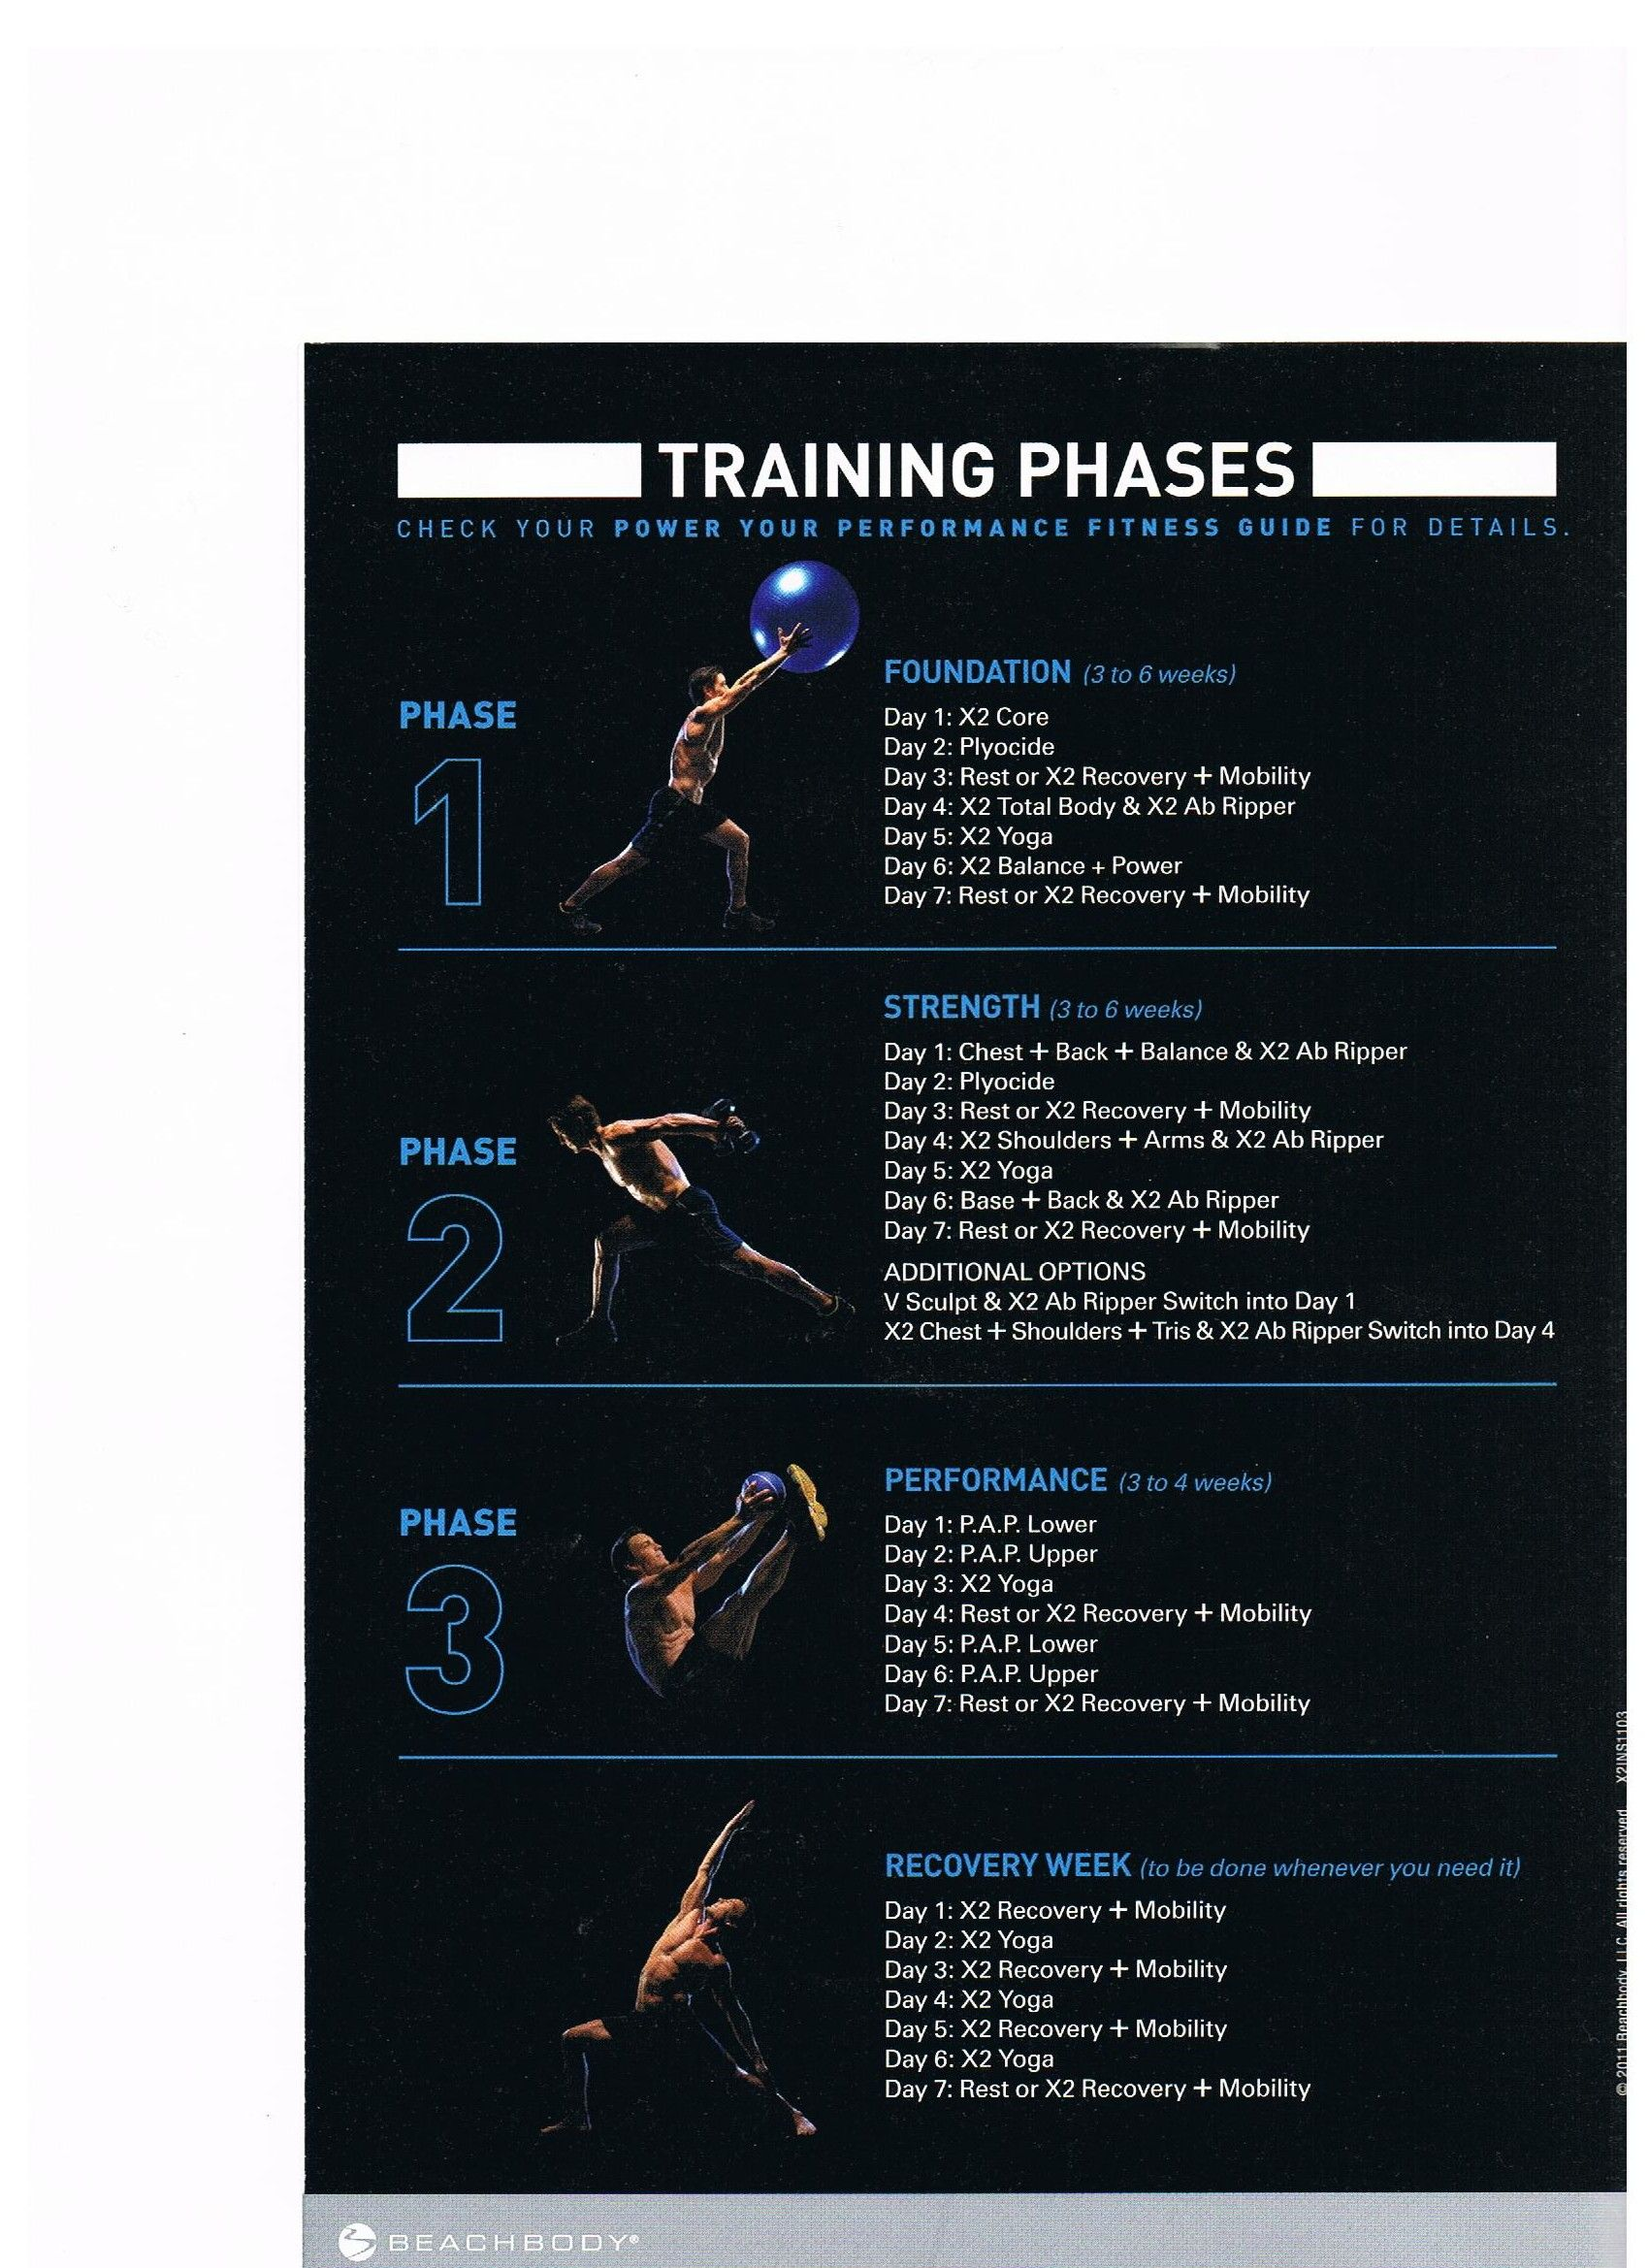 P90x2 - my current workout plan  I'm on week 2 and getting stronger